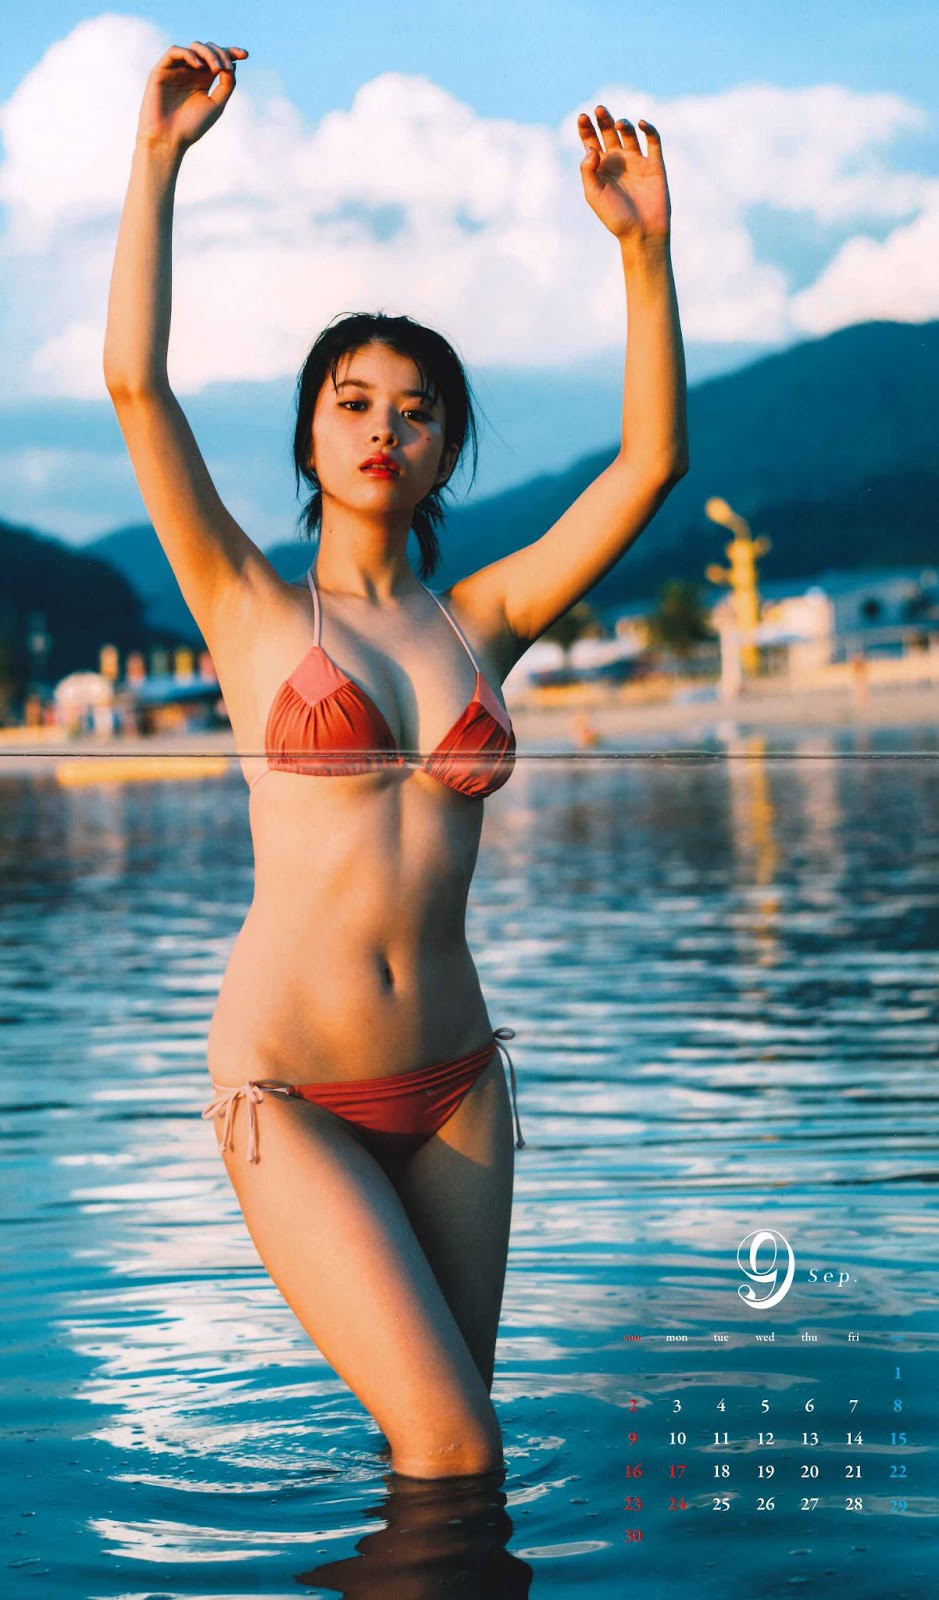 Fumika-CalendarBook-022.jpg